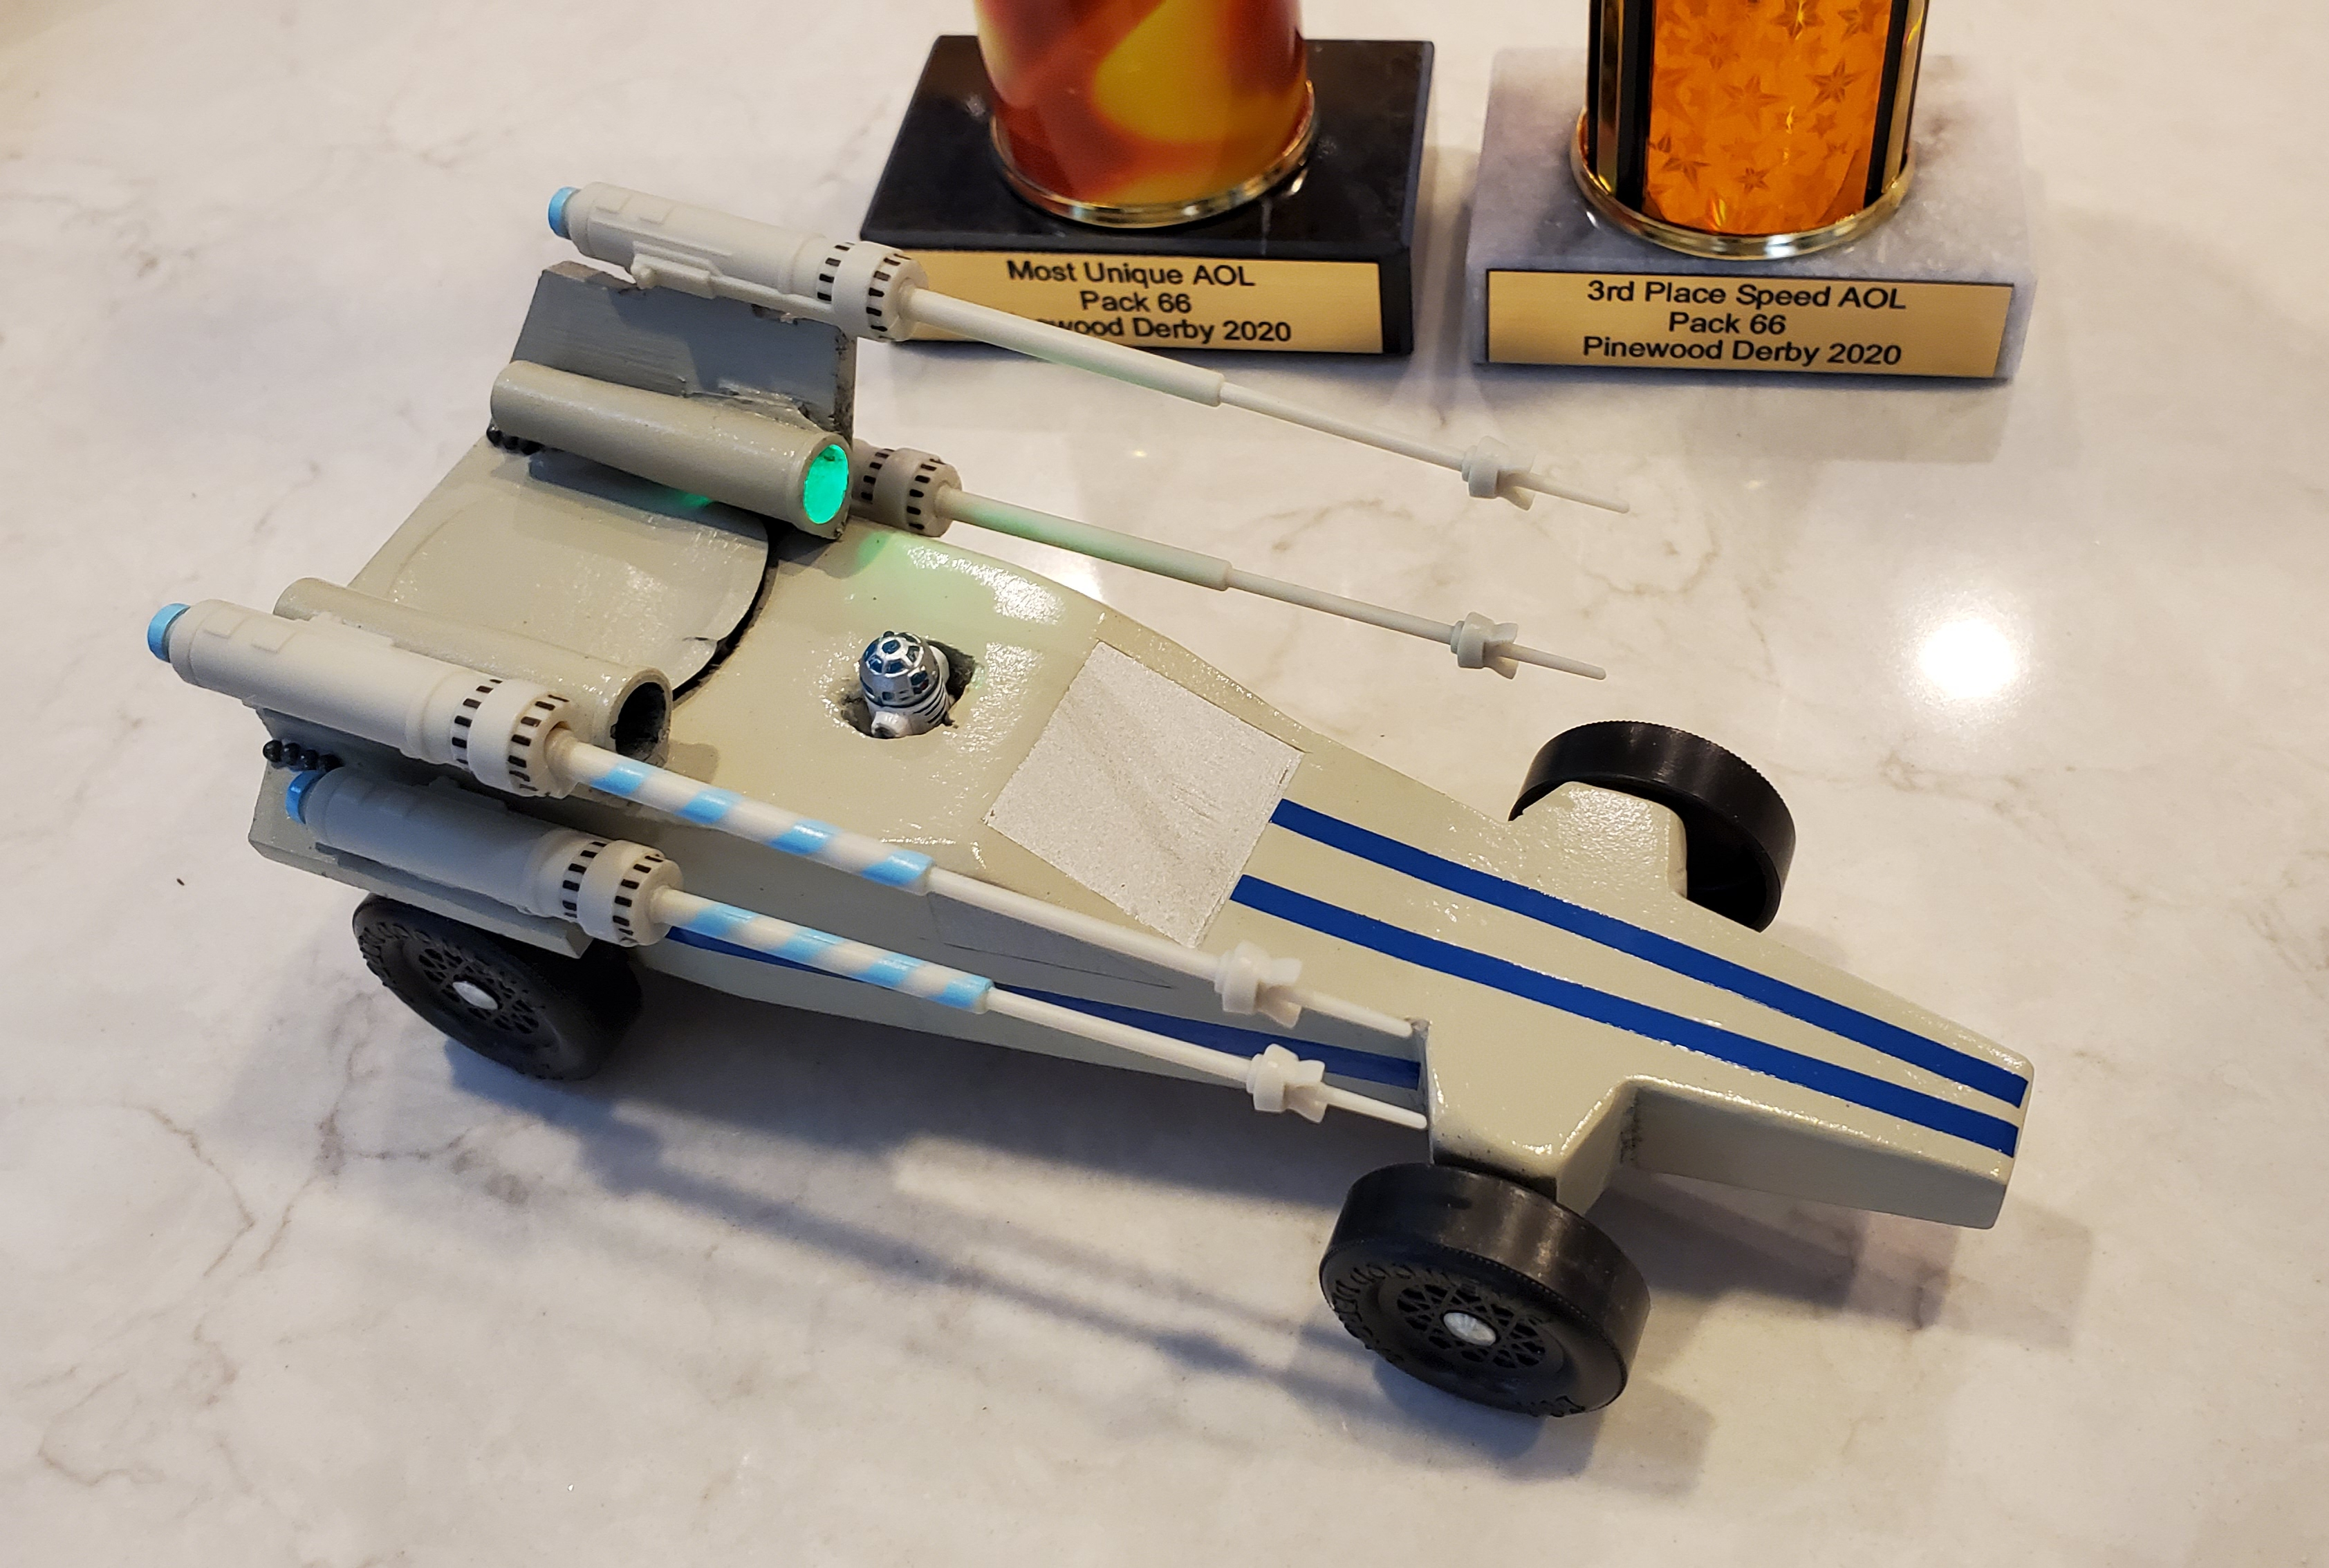 T-65 X-wing fighter